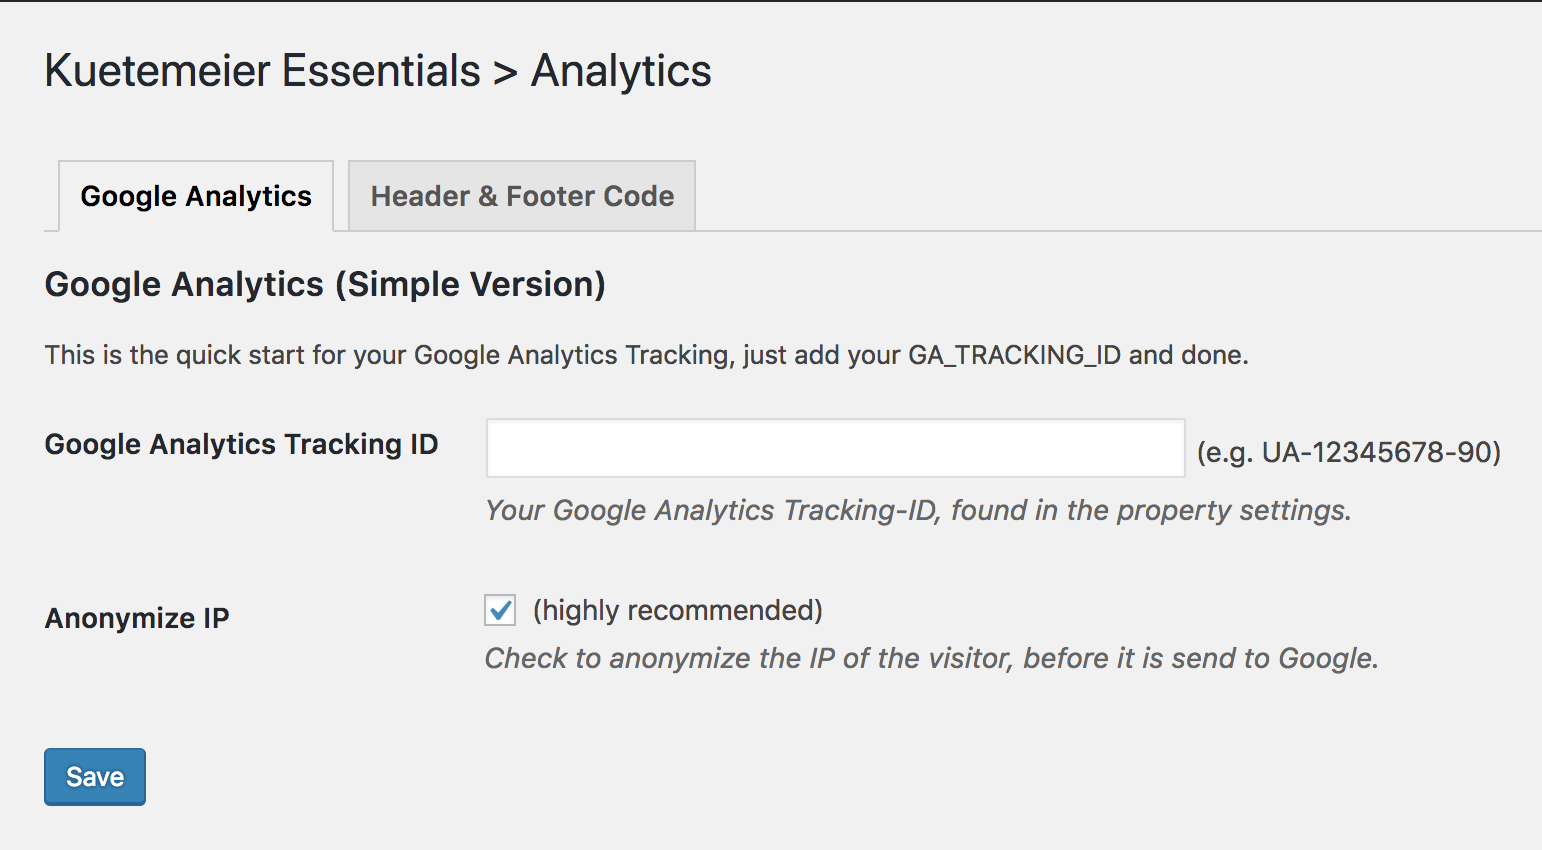 Simply include Google Analytics code with IP anonymization